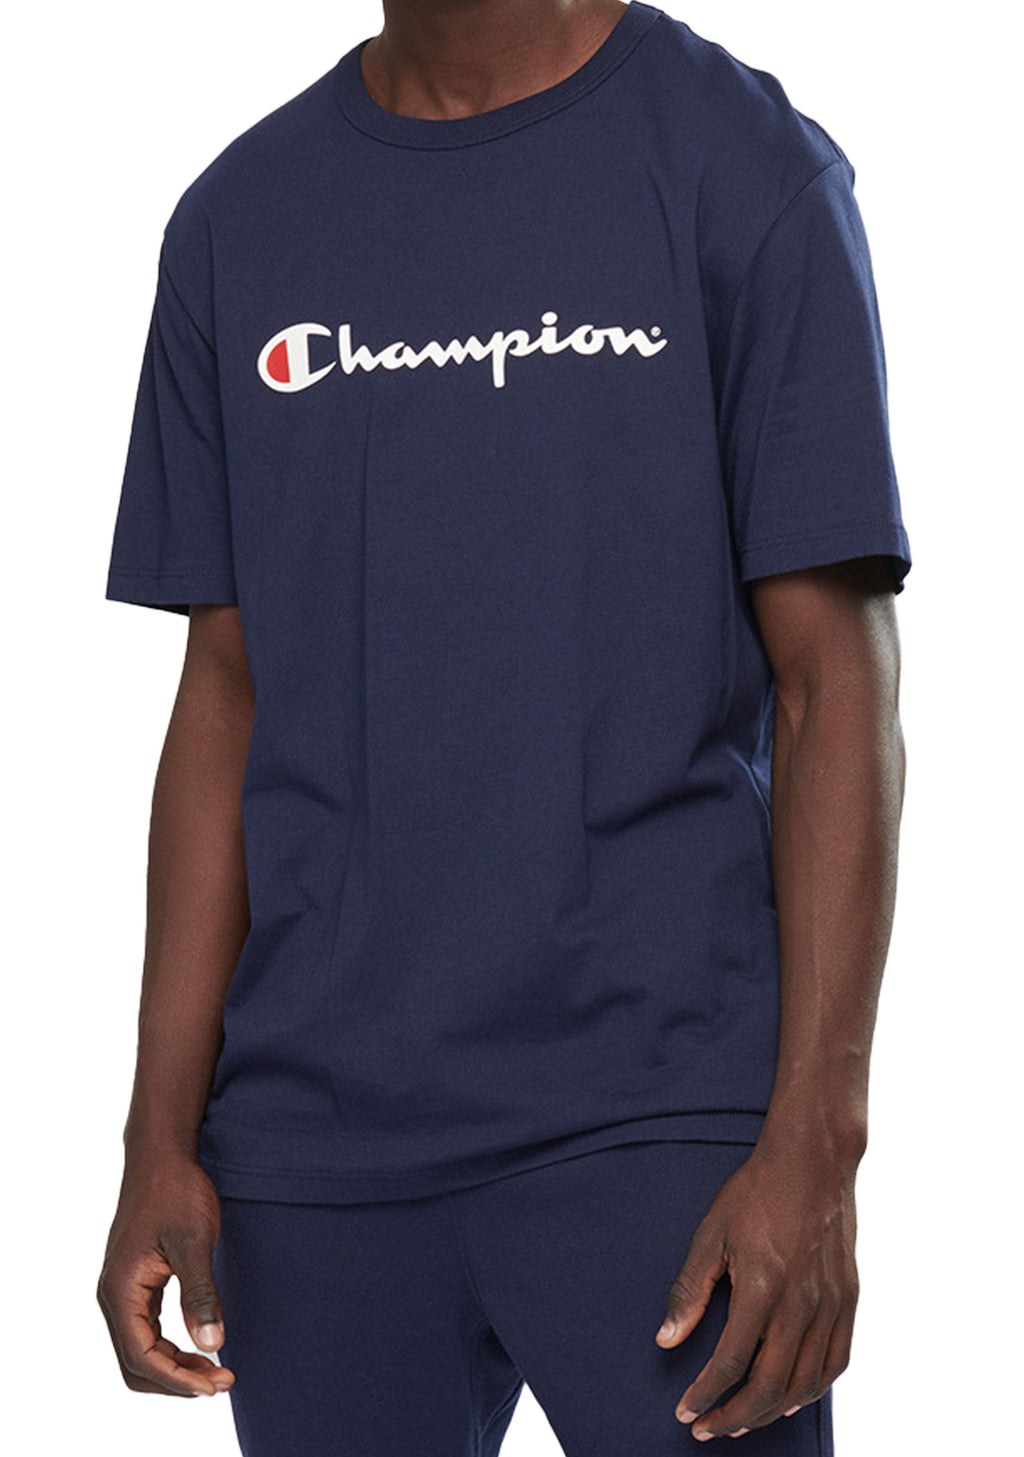 CHAMPION MENS SCRIPT SHORT SLEEVE TEE NAVY BLUE <BR> AXQPN NVY